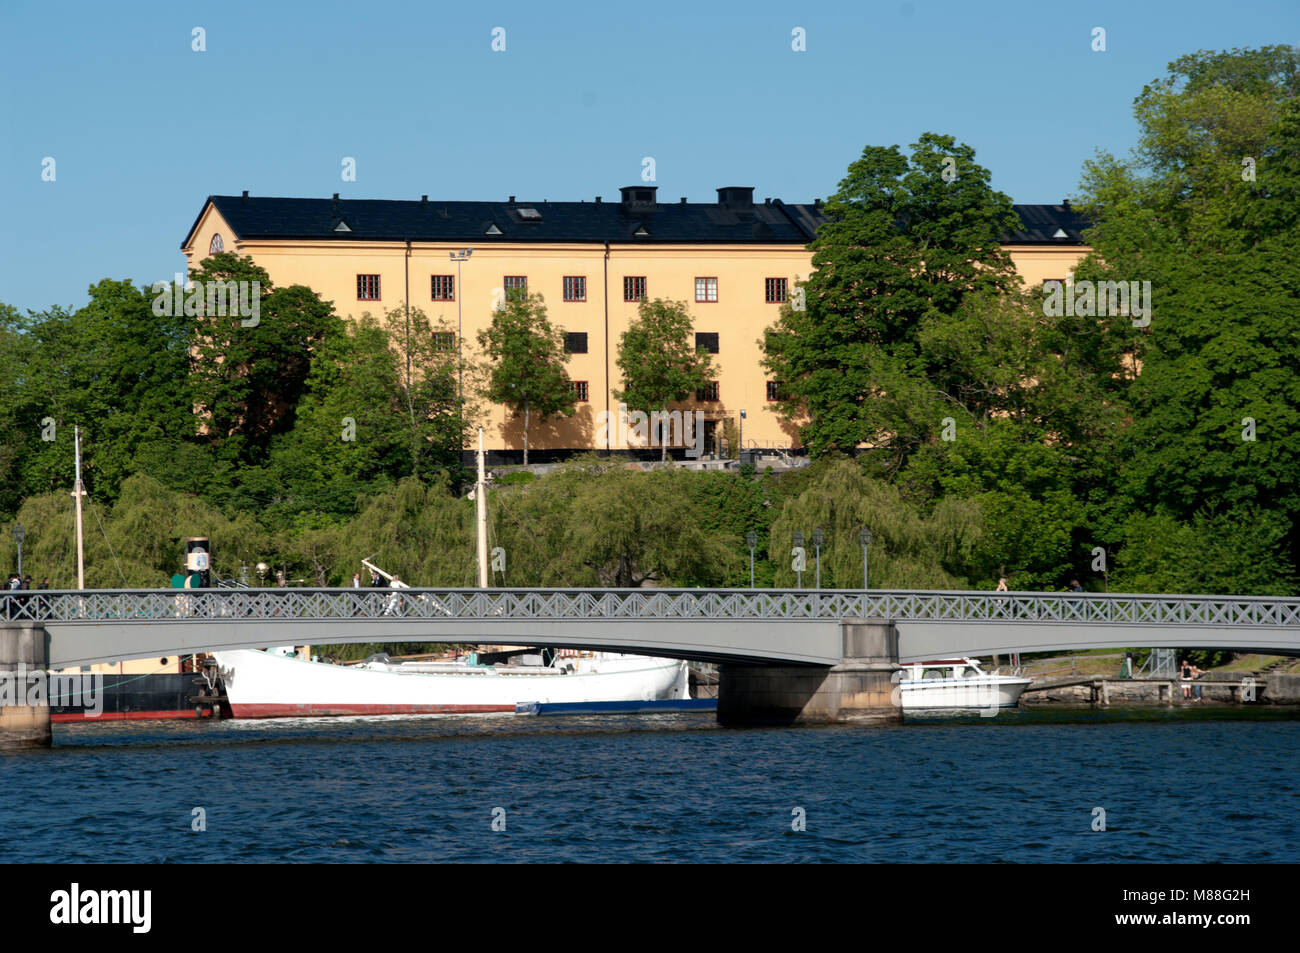 Stockholm, Skeppsholmen, Museum of Far Eastern Antiquities, Sweden, - Stock Image